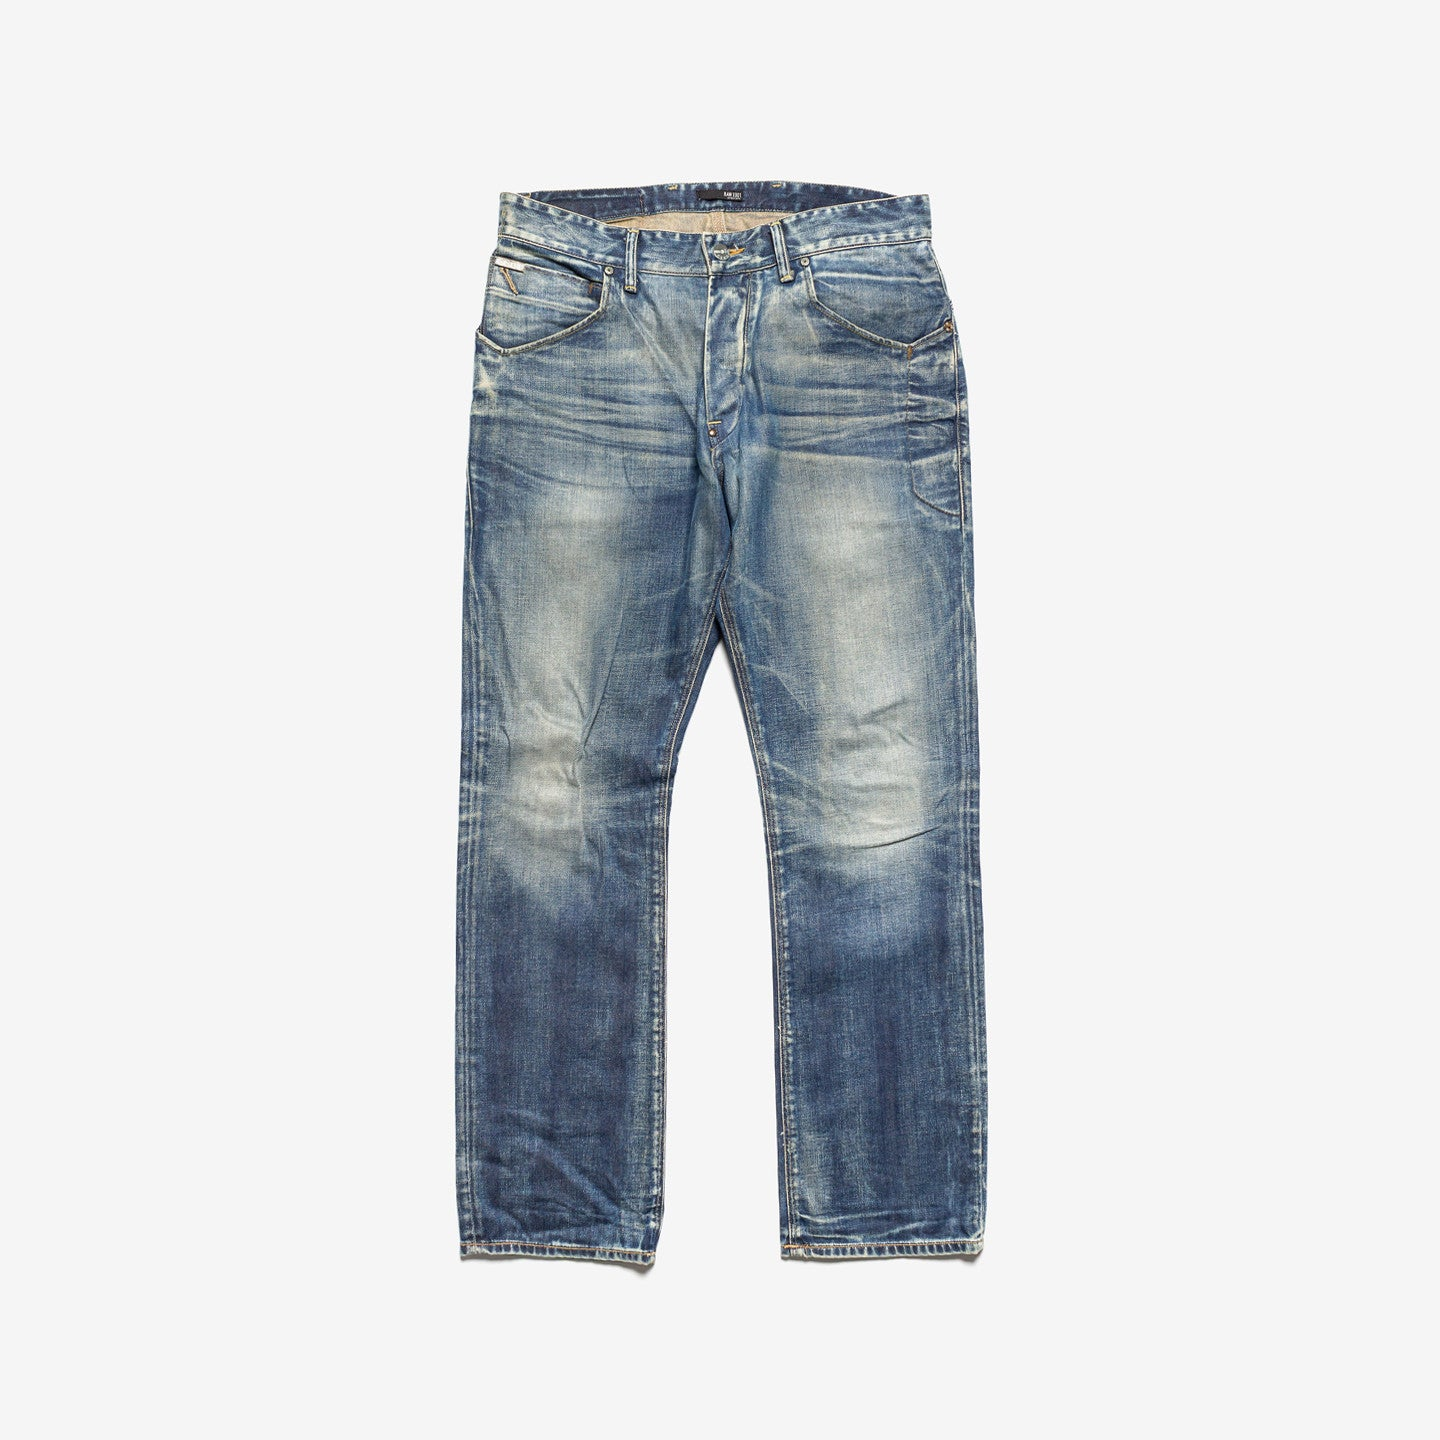 G-Star Raw / 3301 Rook Tapered Jeans